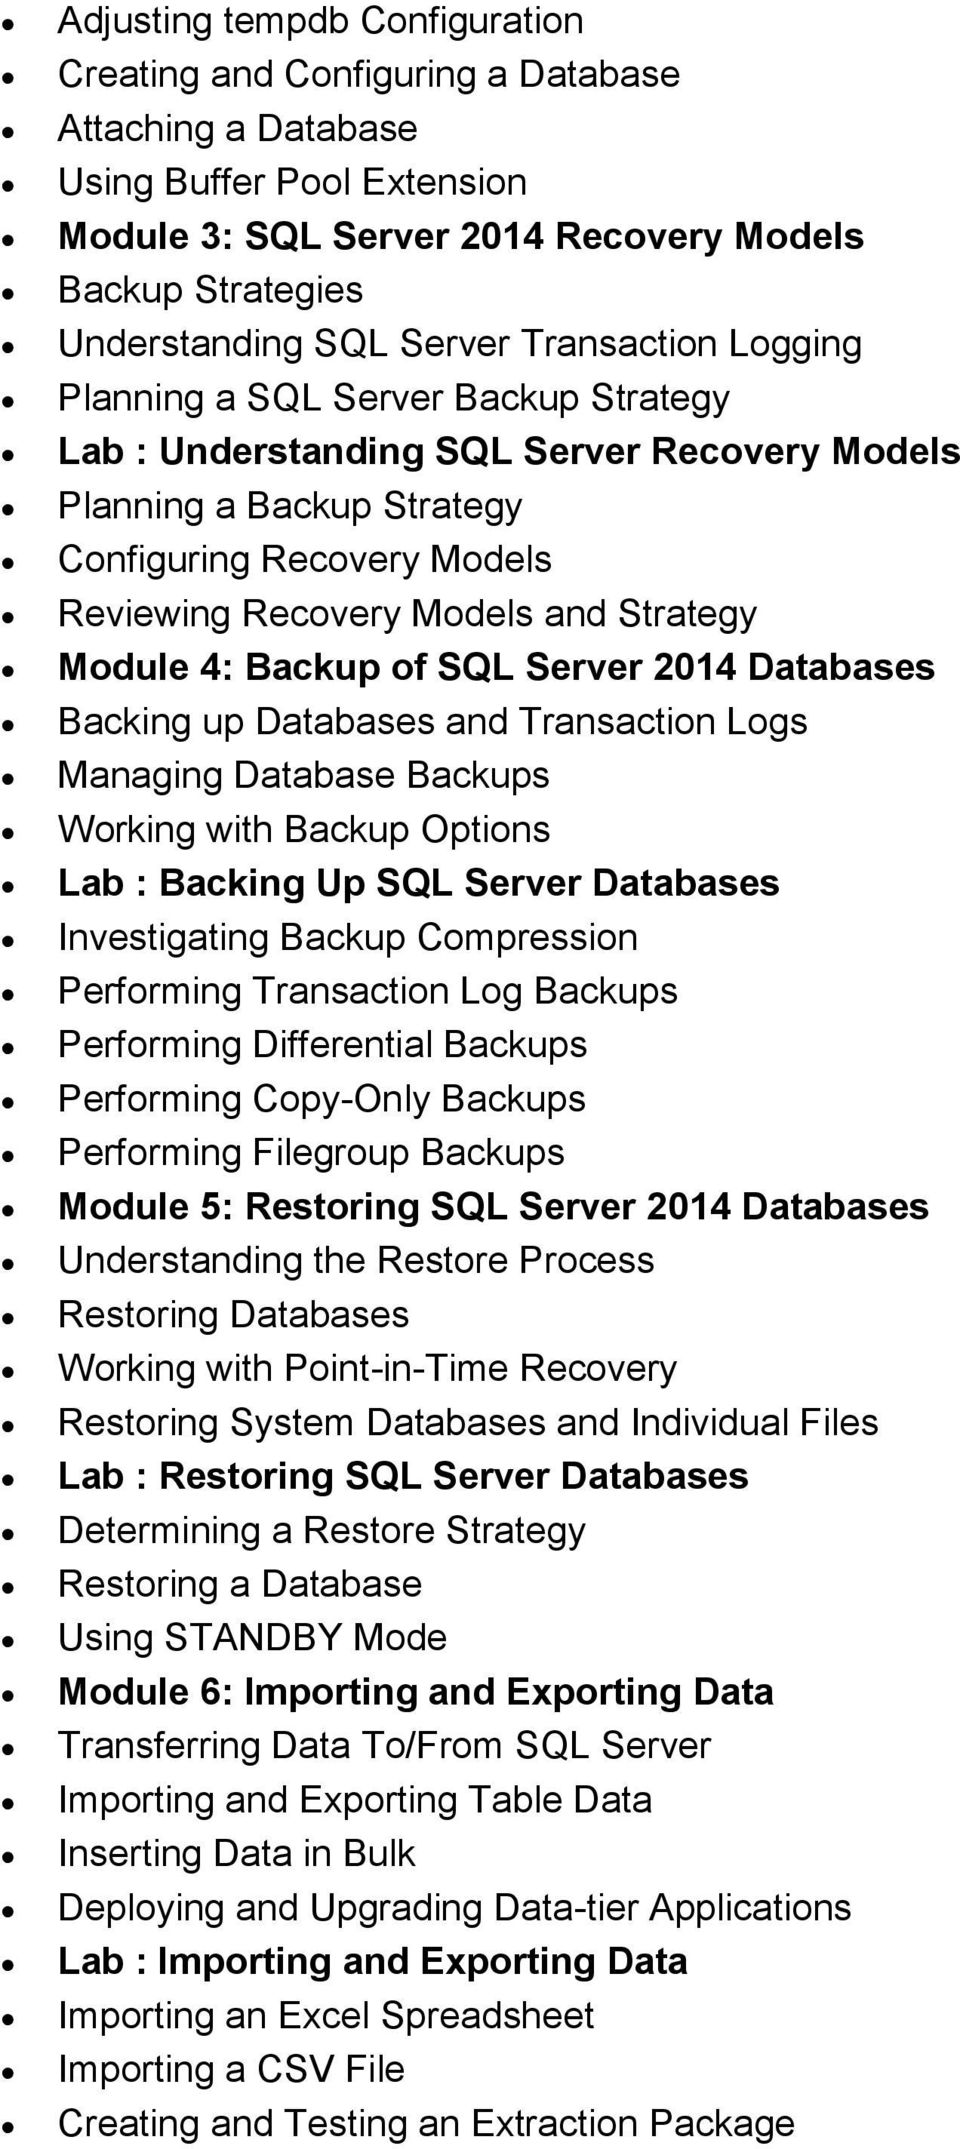 Strategy Module 4: Backup of SQL Server 2014 Databases Backing up Databases and Transaction Logs Managing Database Backups Working with Backup Options Lab : Backing Up SQL Server Databases